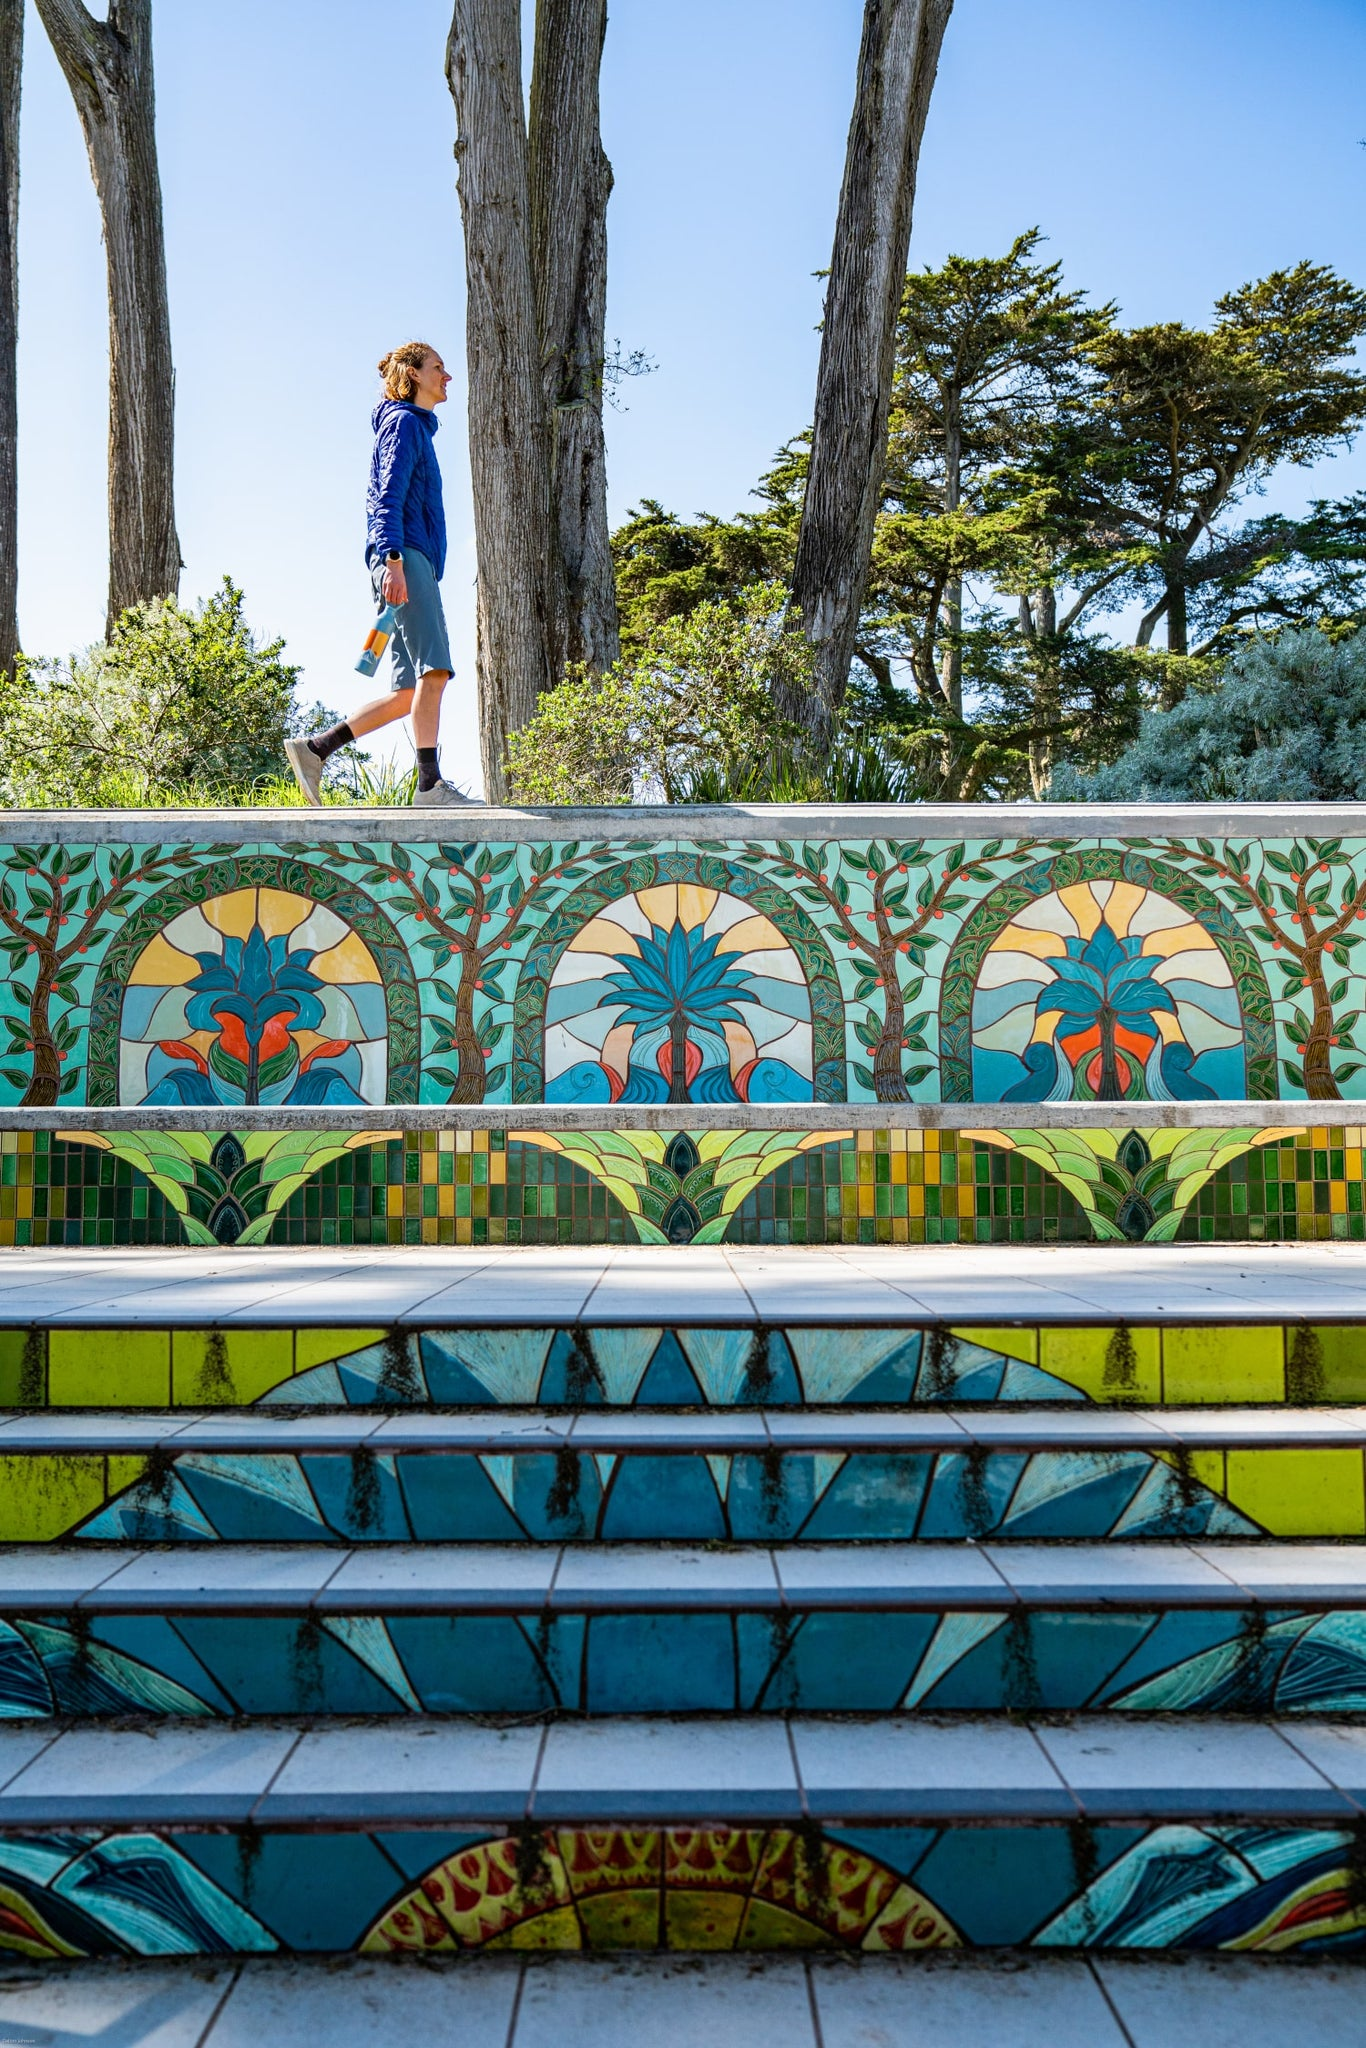 Person walking on mosaic stairs in San Francisco